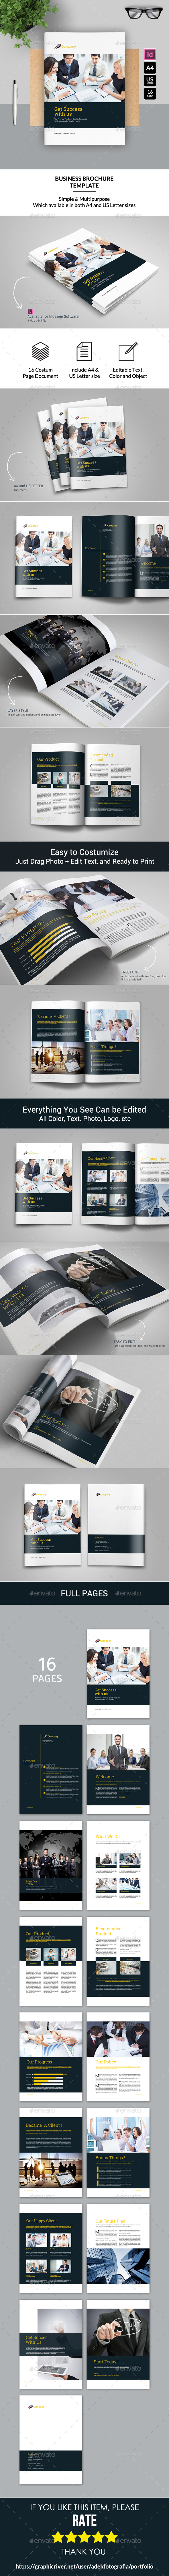 Corporate Business Brochure 16 Pages A4 + Letter - Portfolio Brochures